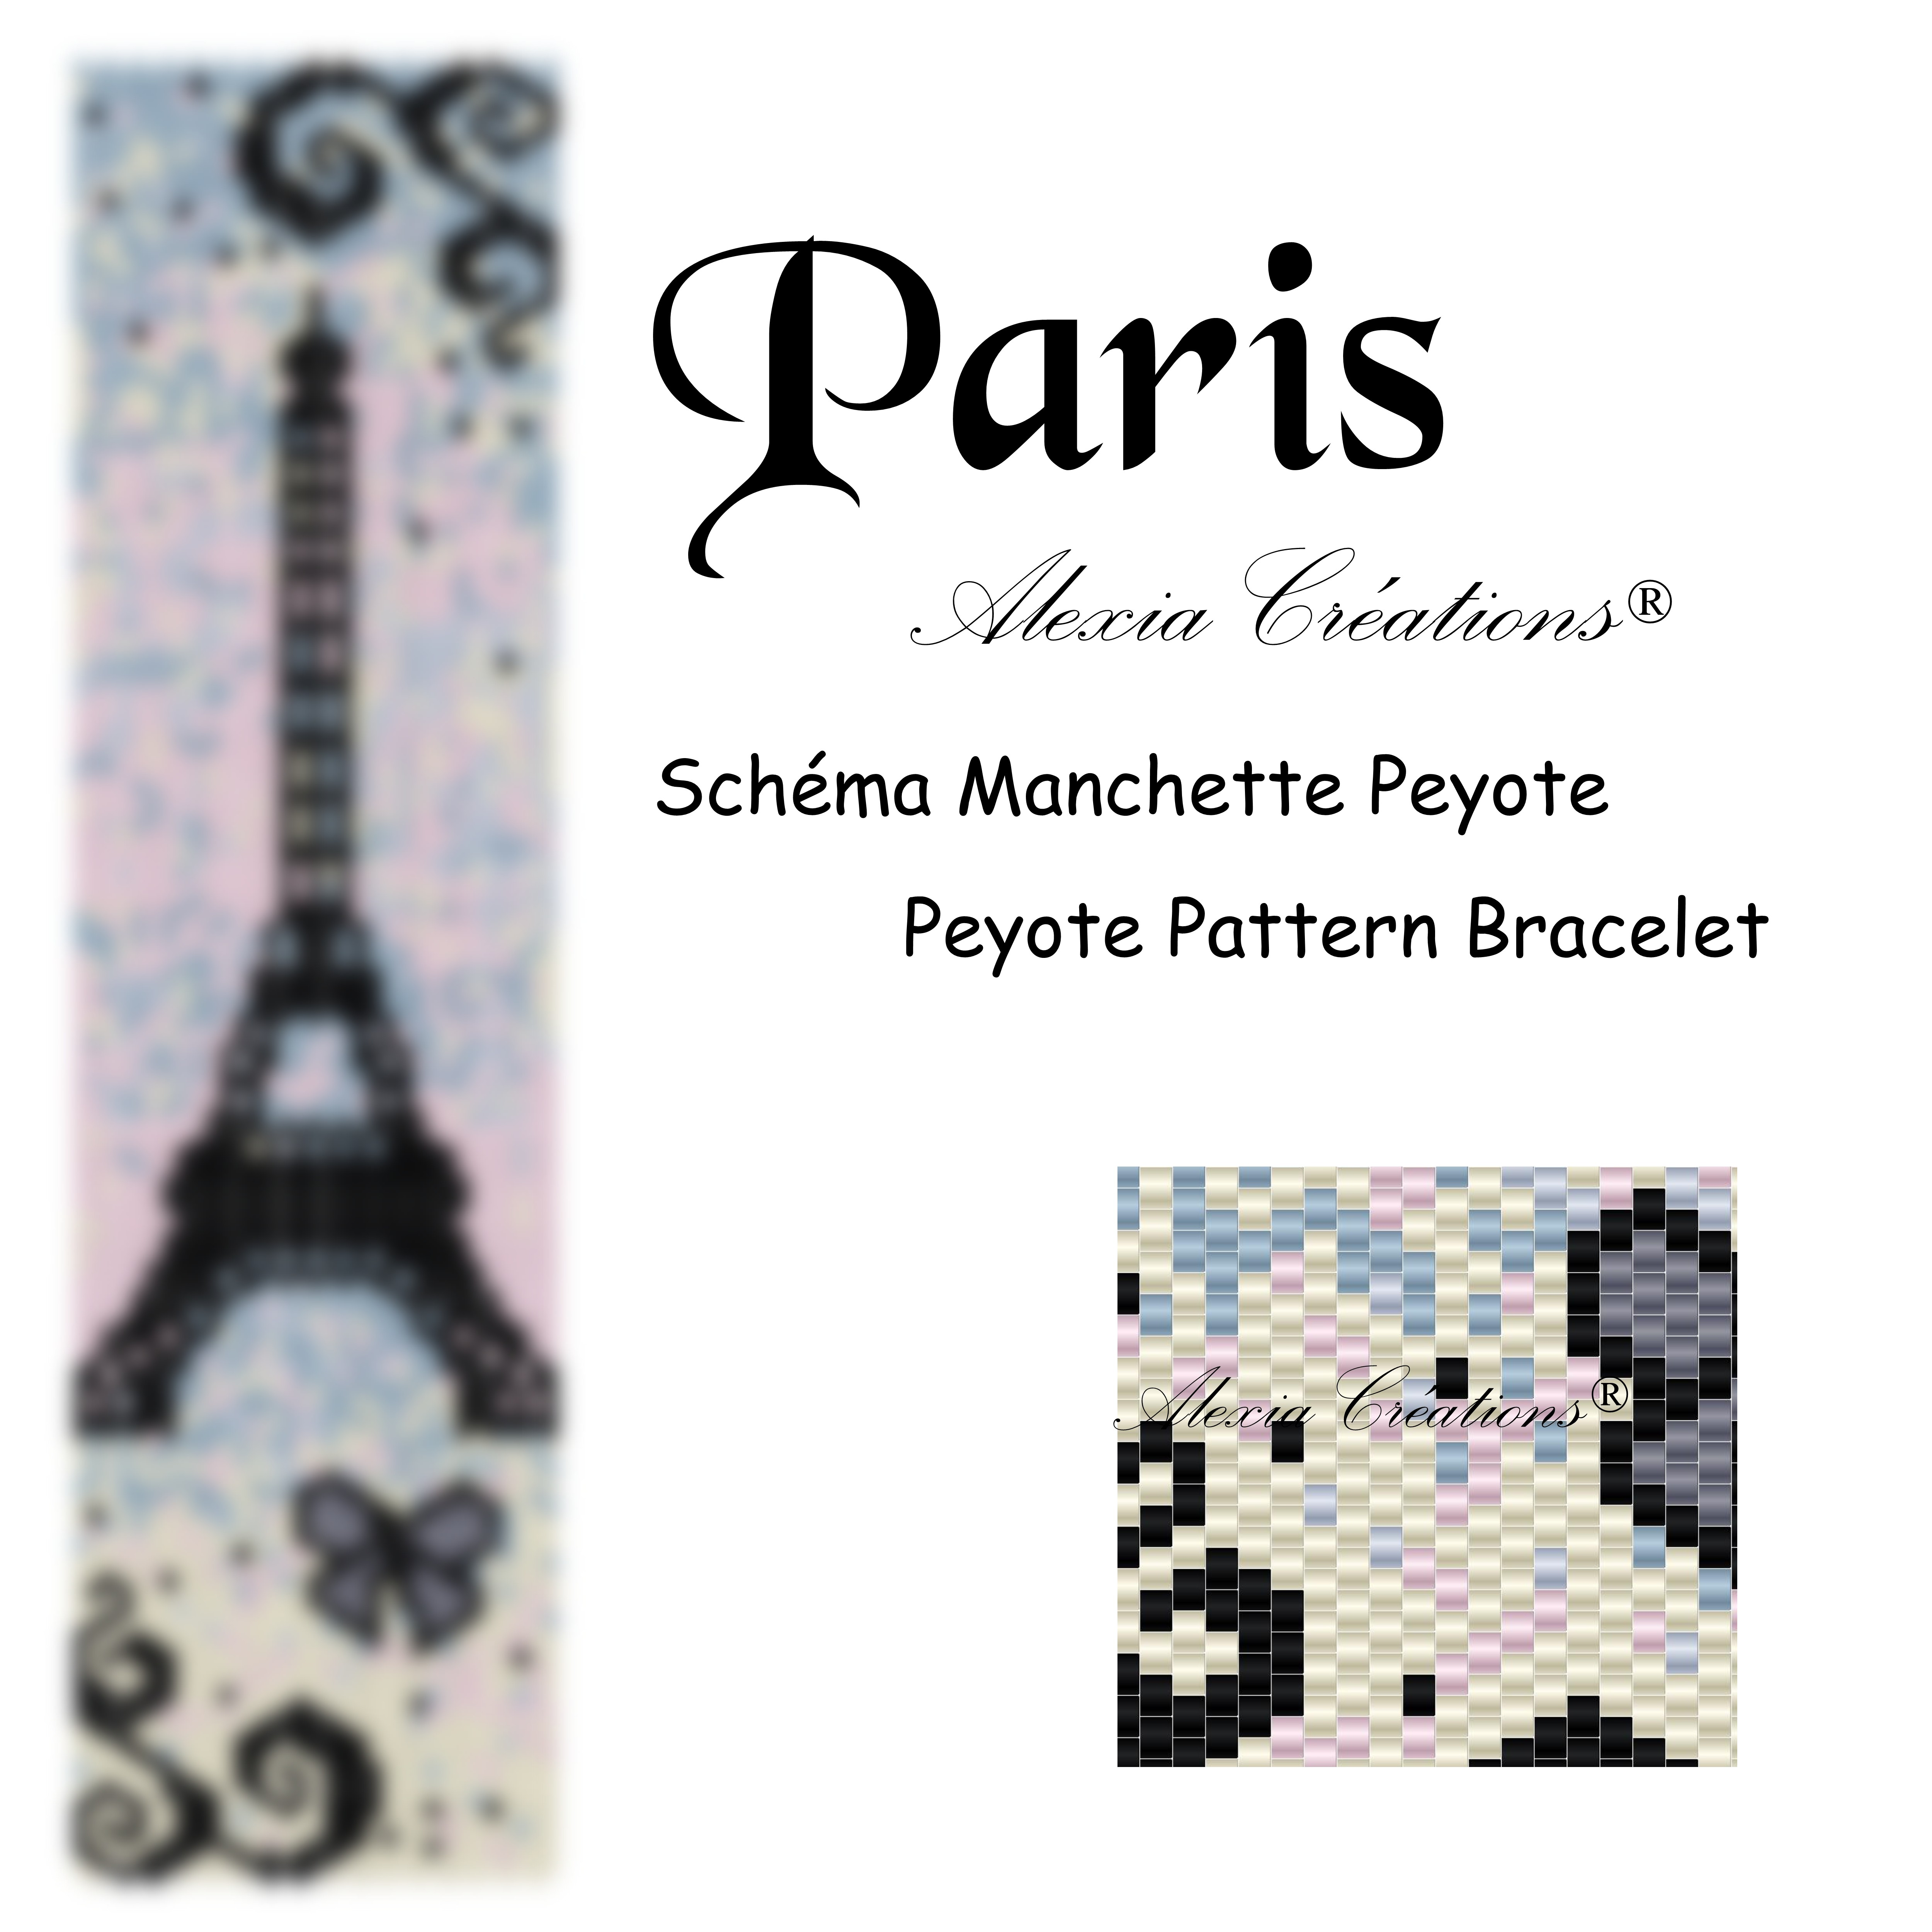 Manchette peyote Paris